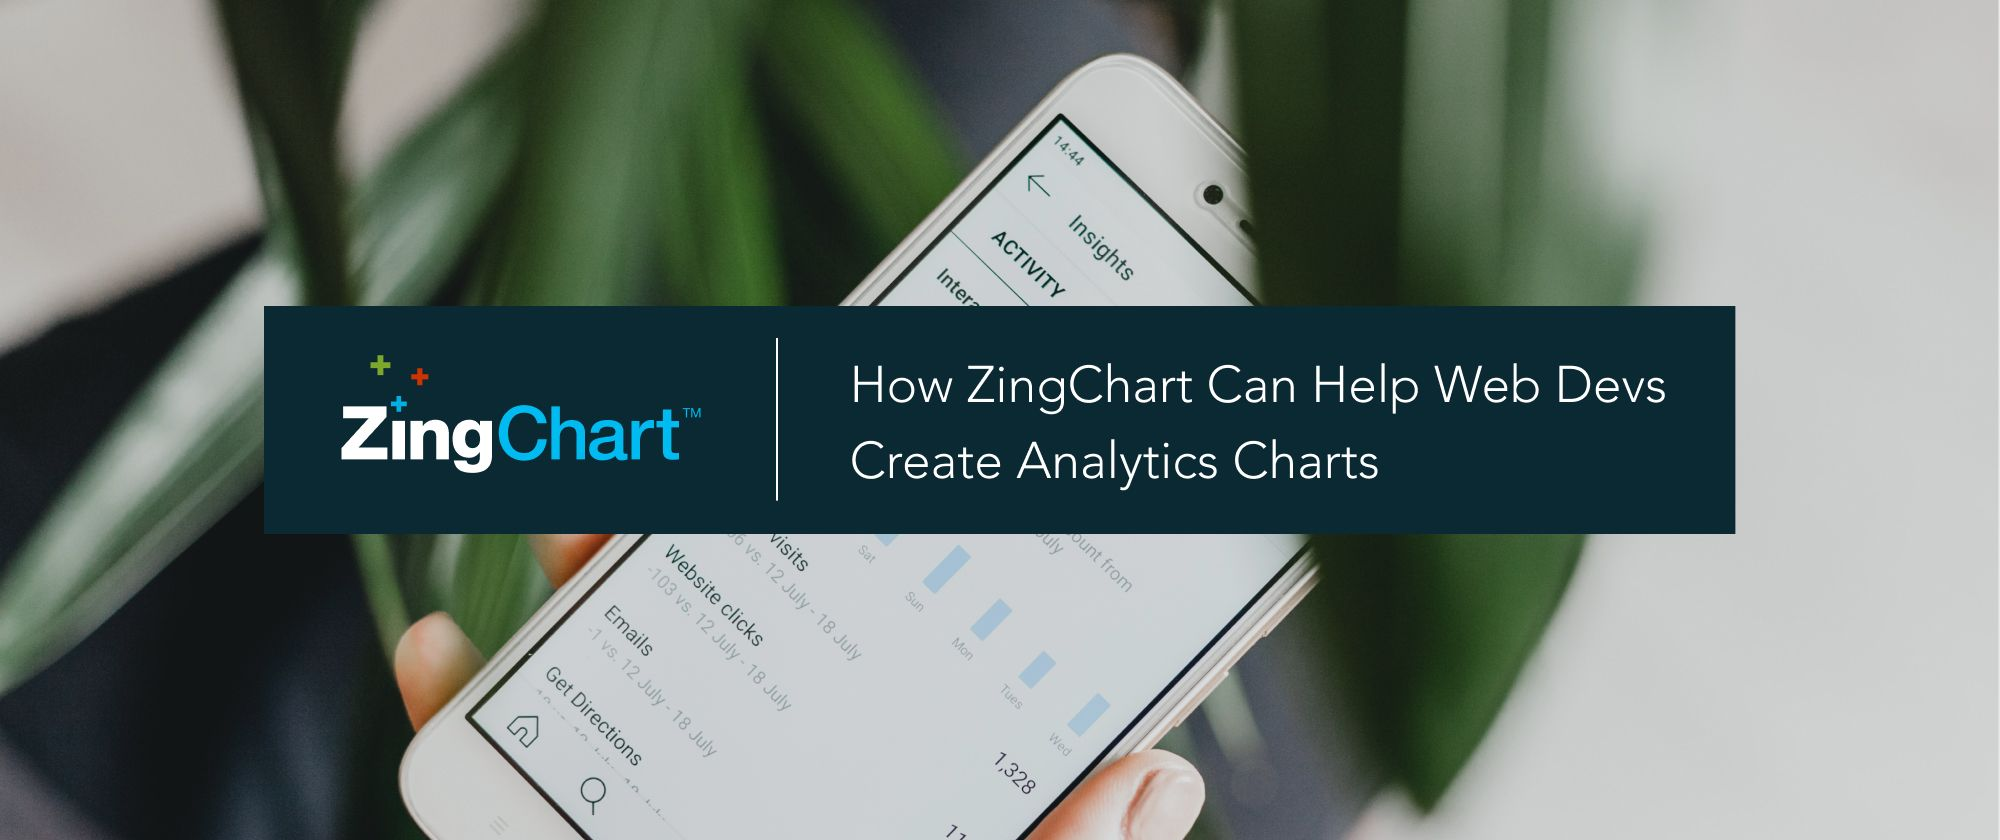 """Cover image for """"How ZingChart Can Help Web Devs Create Analytics Charts"""" blog post"""